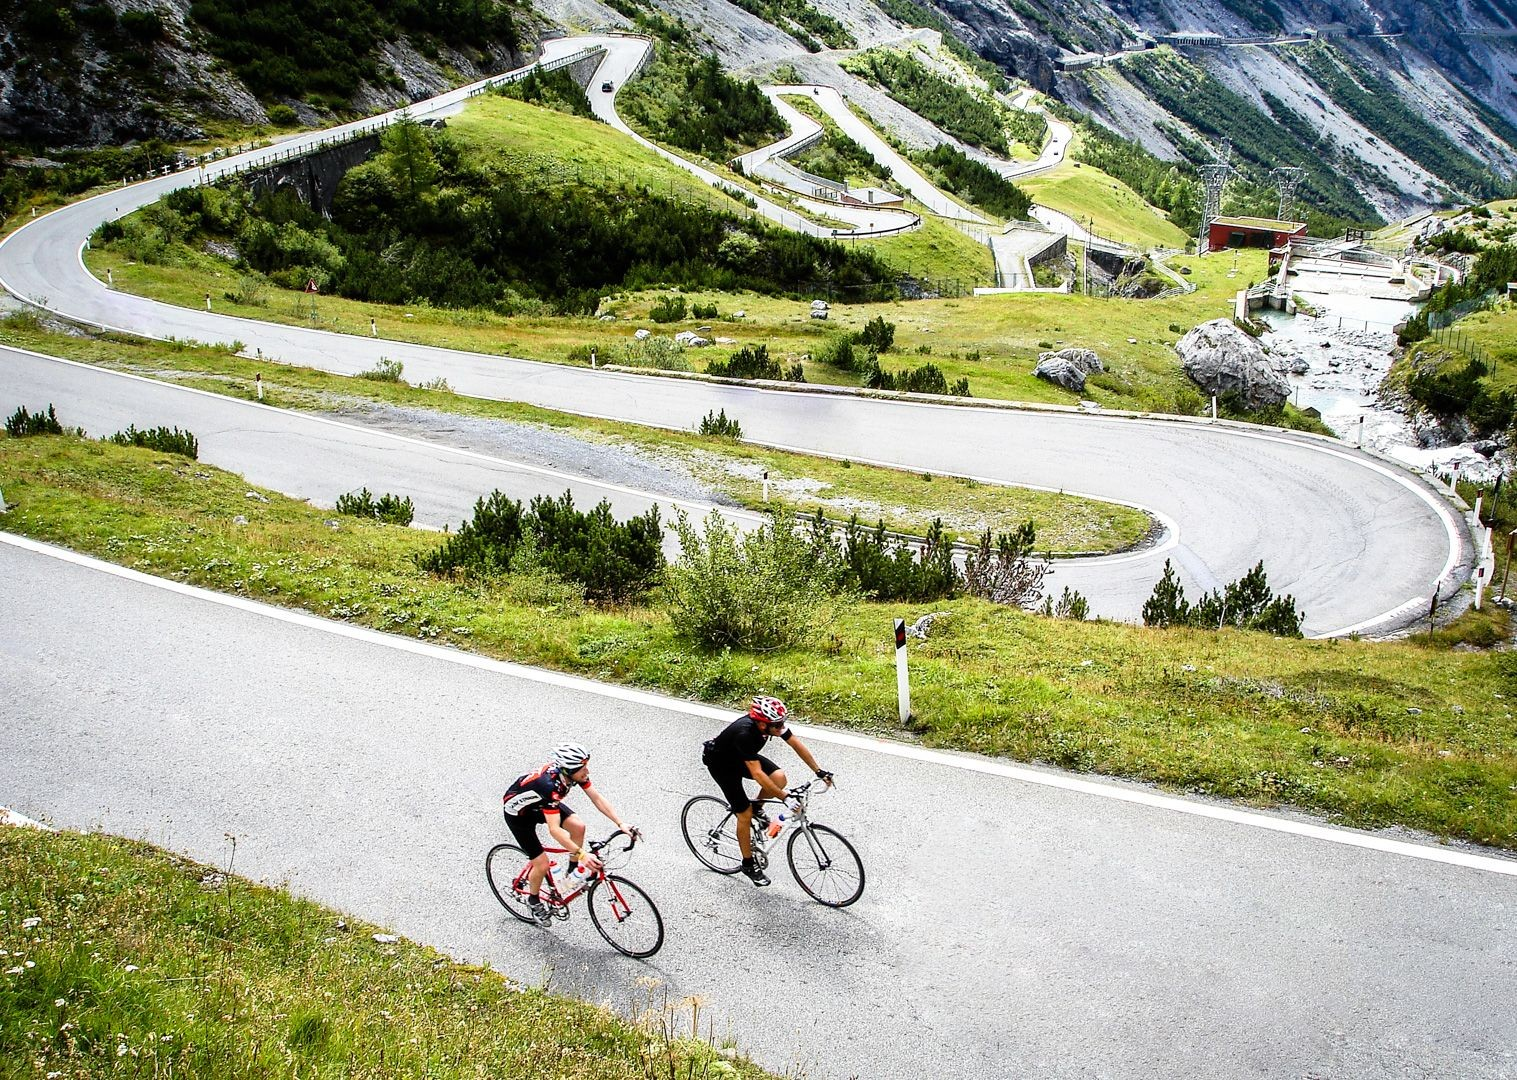 col-italy-cime-di-lavaredo-road-cycling.jpg - Italy - Alps and Dolomites - Giants of the Giro - Guided Road Cycling Holiday - Road Cycling